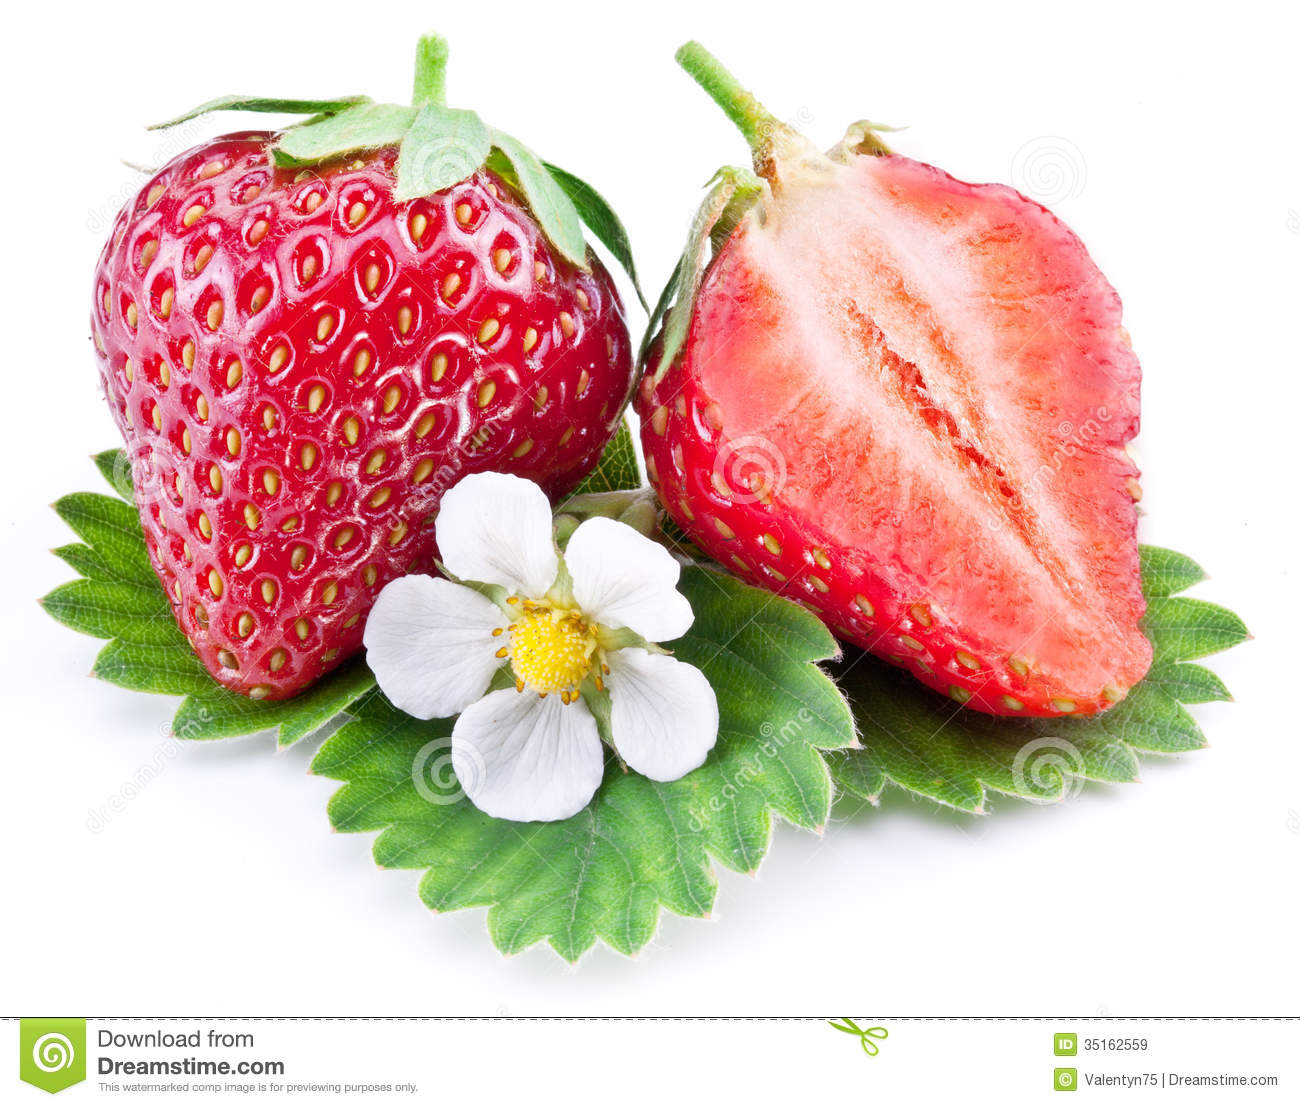 Attractive Royalty Free Stock Photo. Download Strawberry Fruit With Slice And Flower.